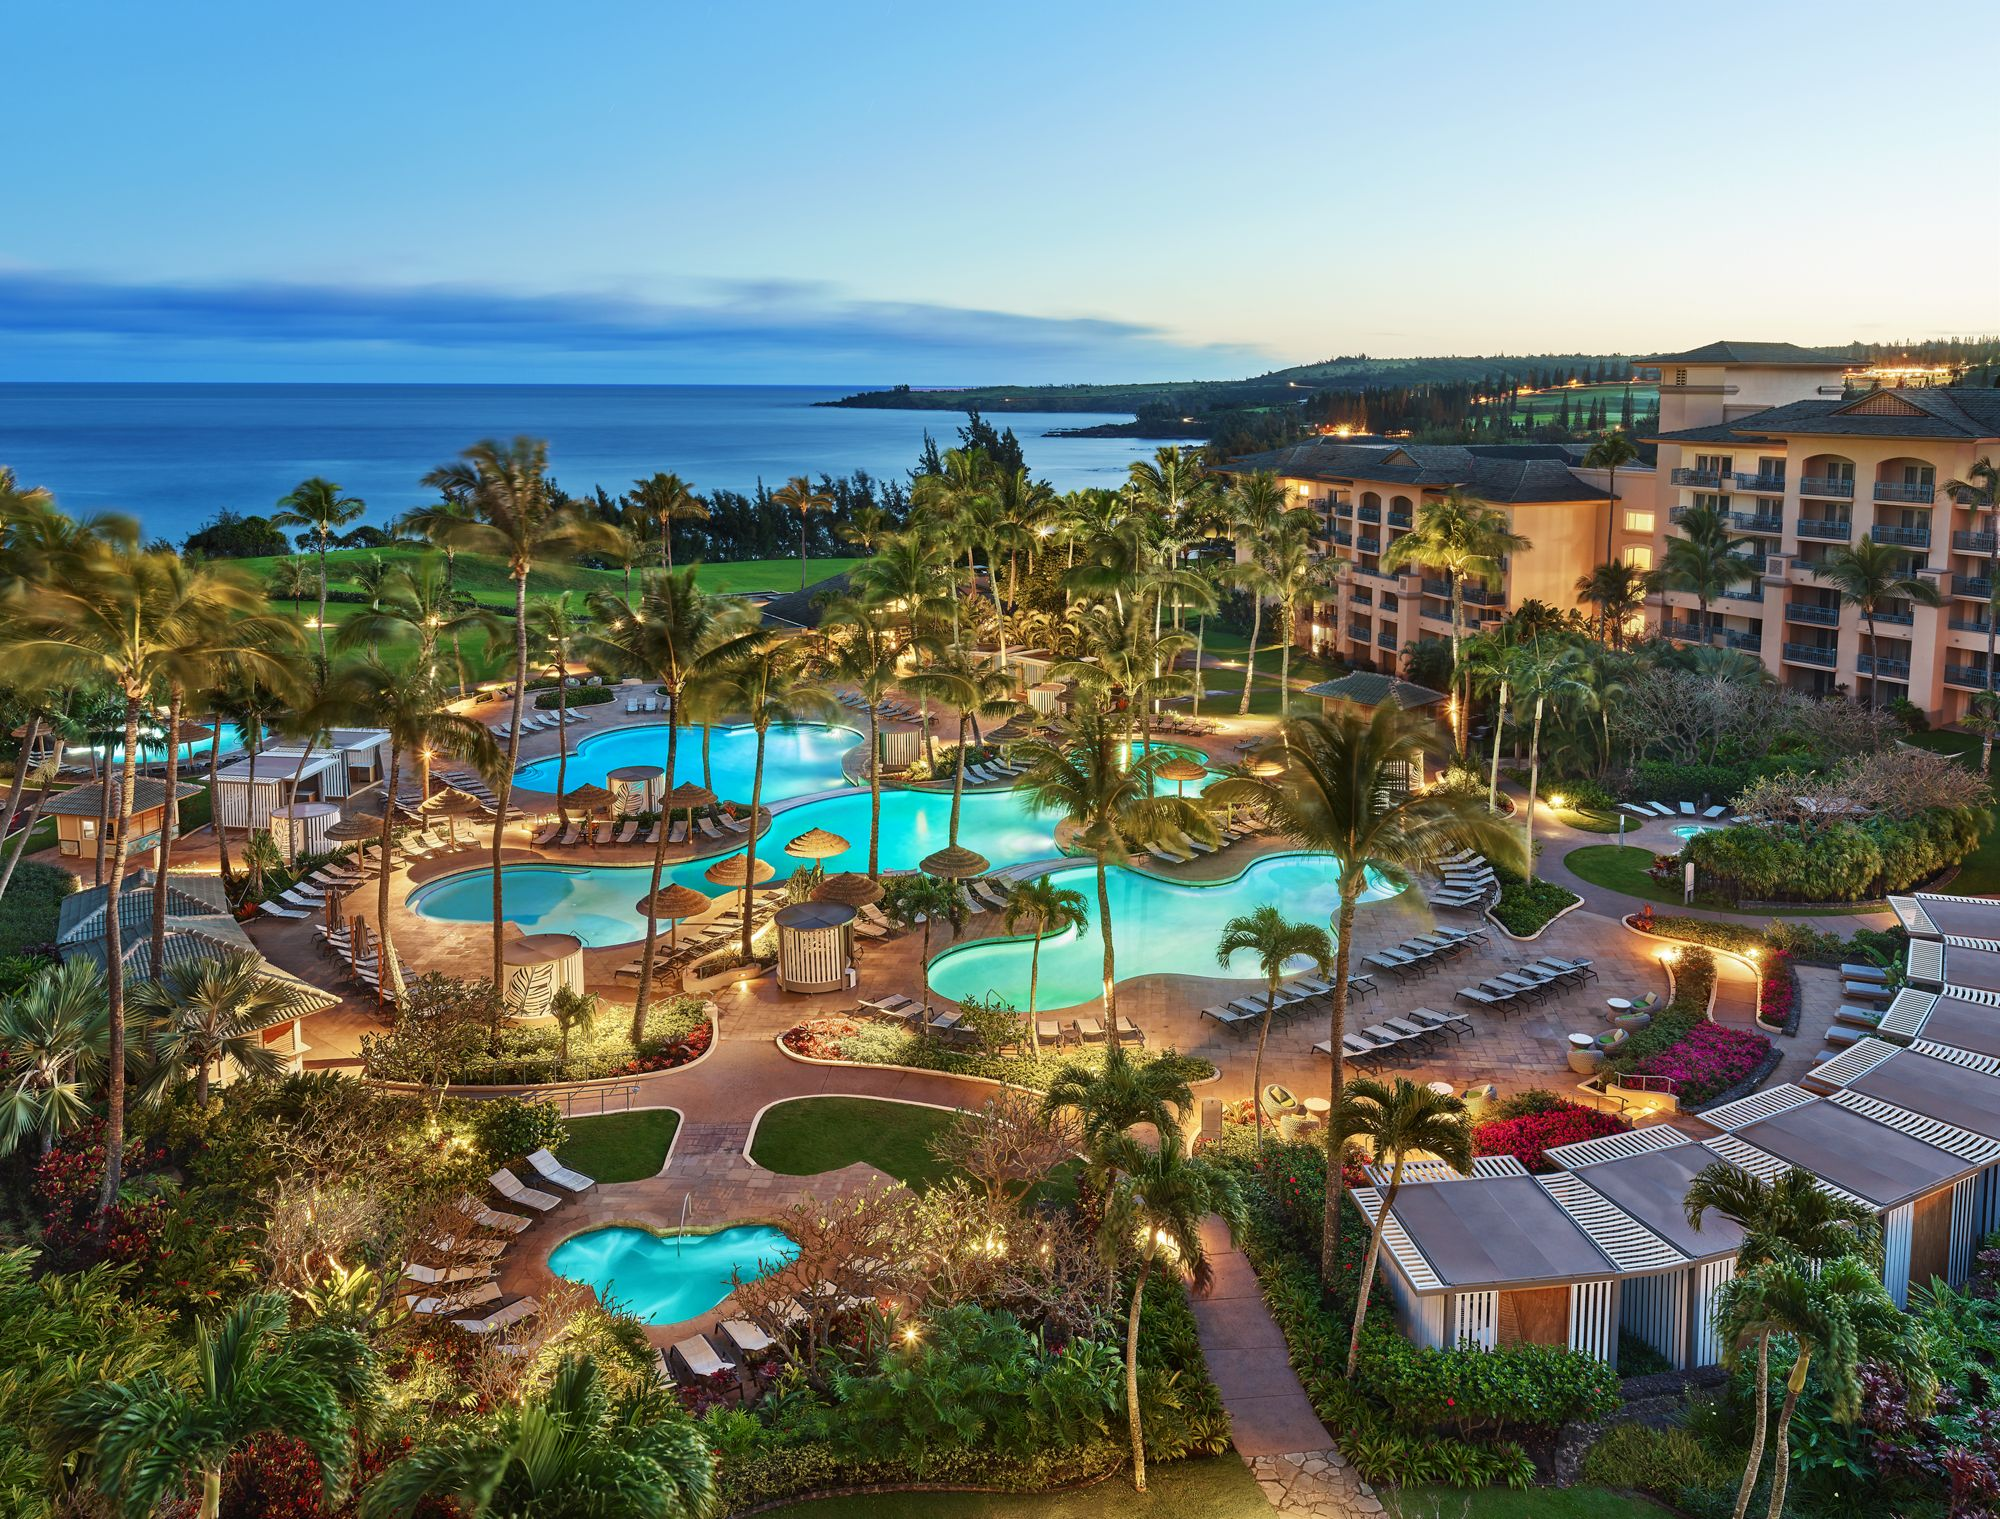 Kapalua Resort - Maui Five-Star Hotels | The Ritz-Carlton